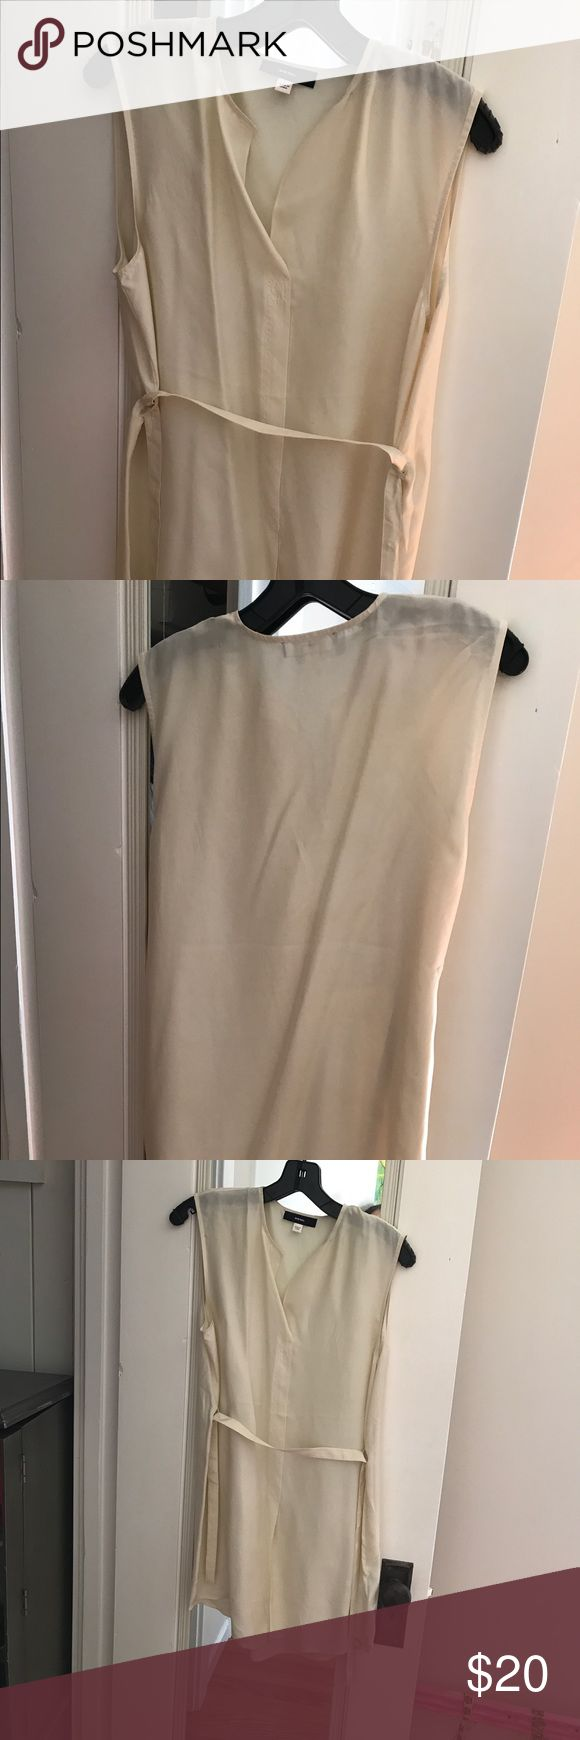 Diesel Top Off white Diesel Top. Worn once. In very good condition. Size XS Diesel Tops